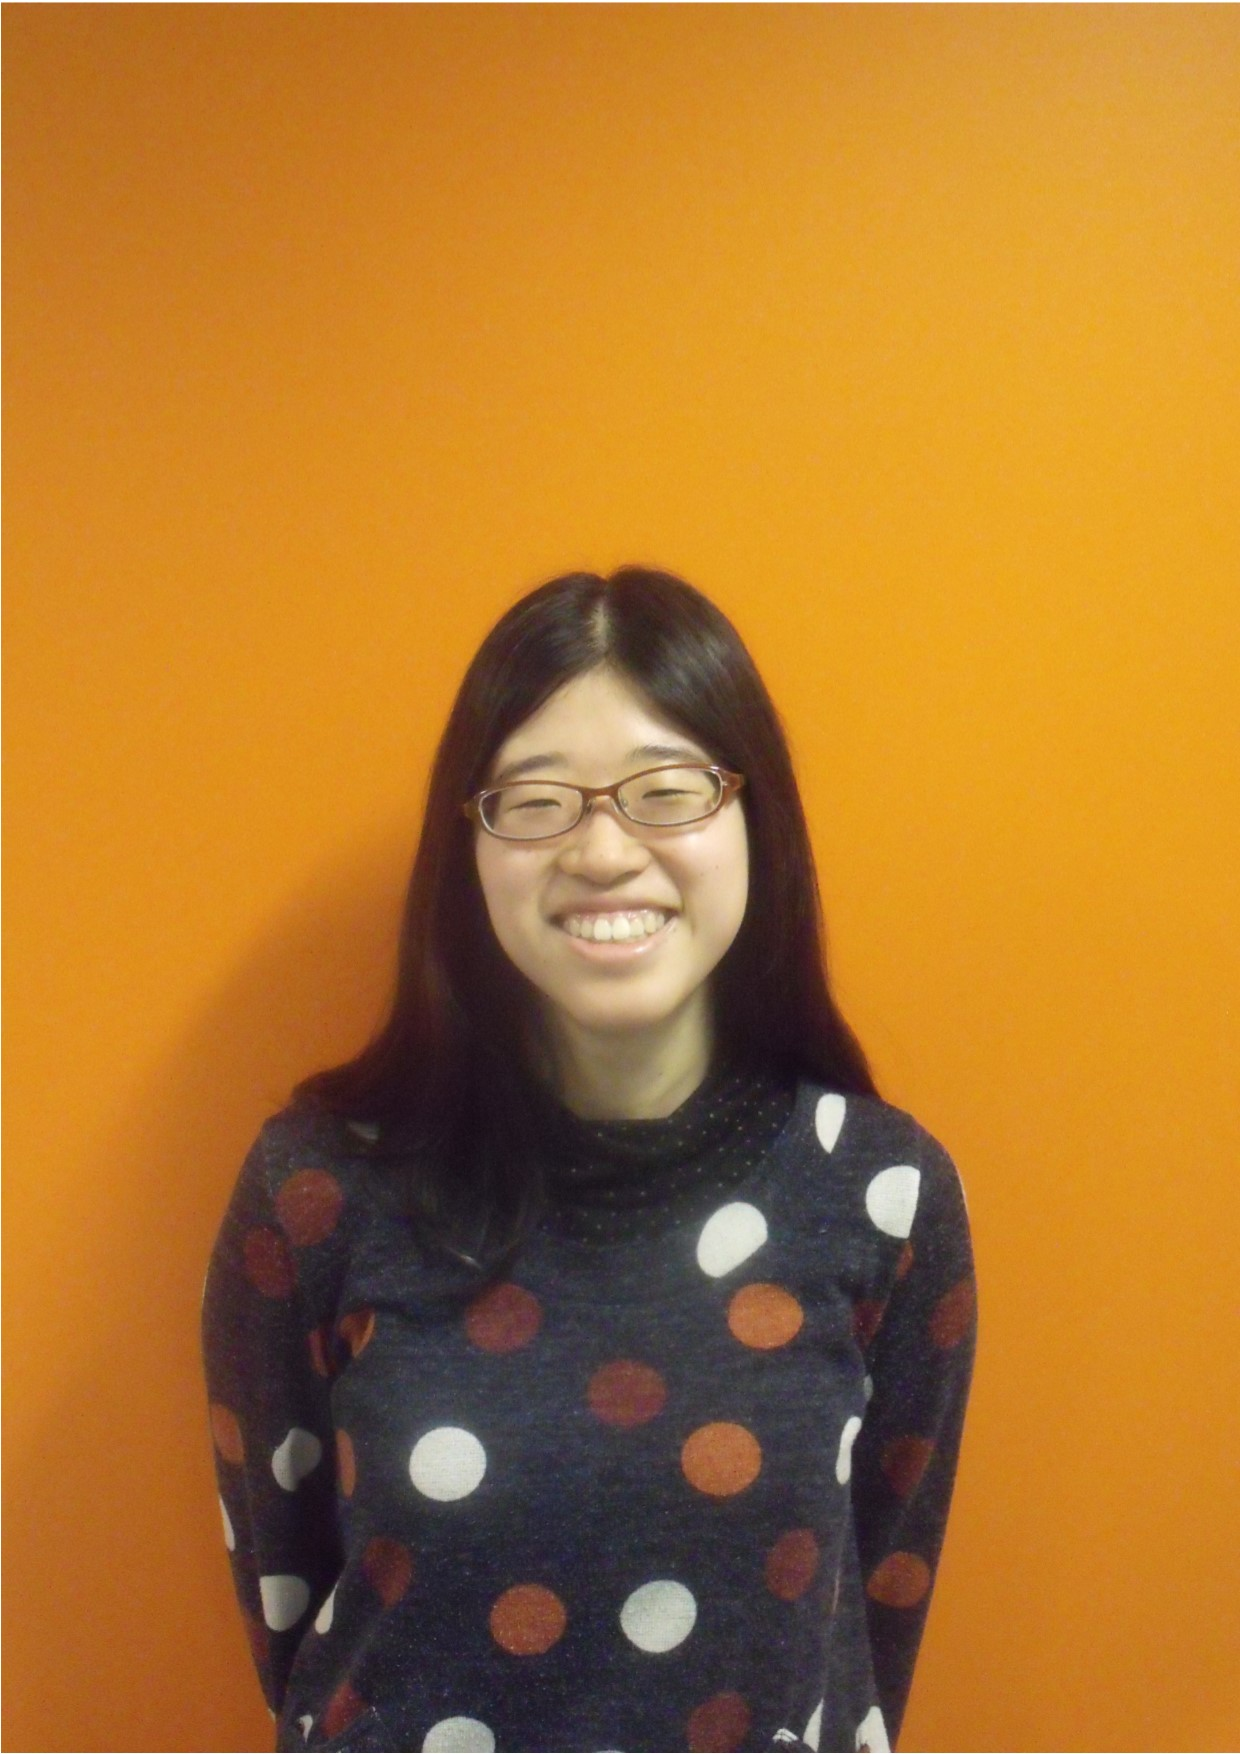 Erina from Japan studies English at EC Cambridge